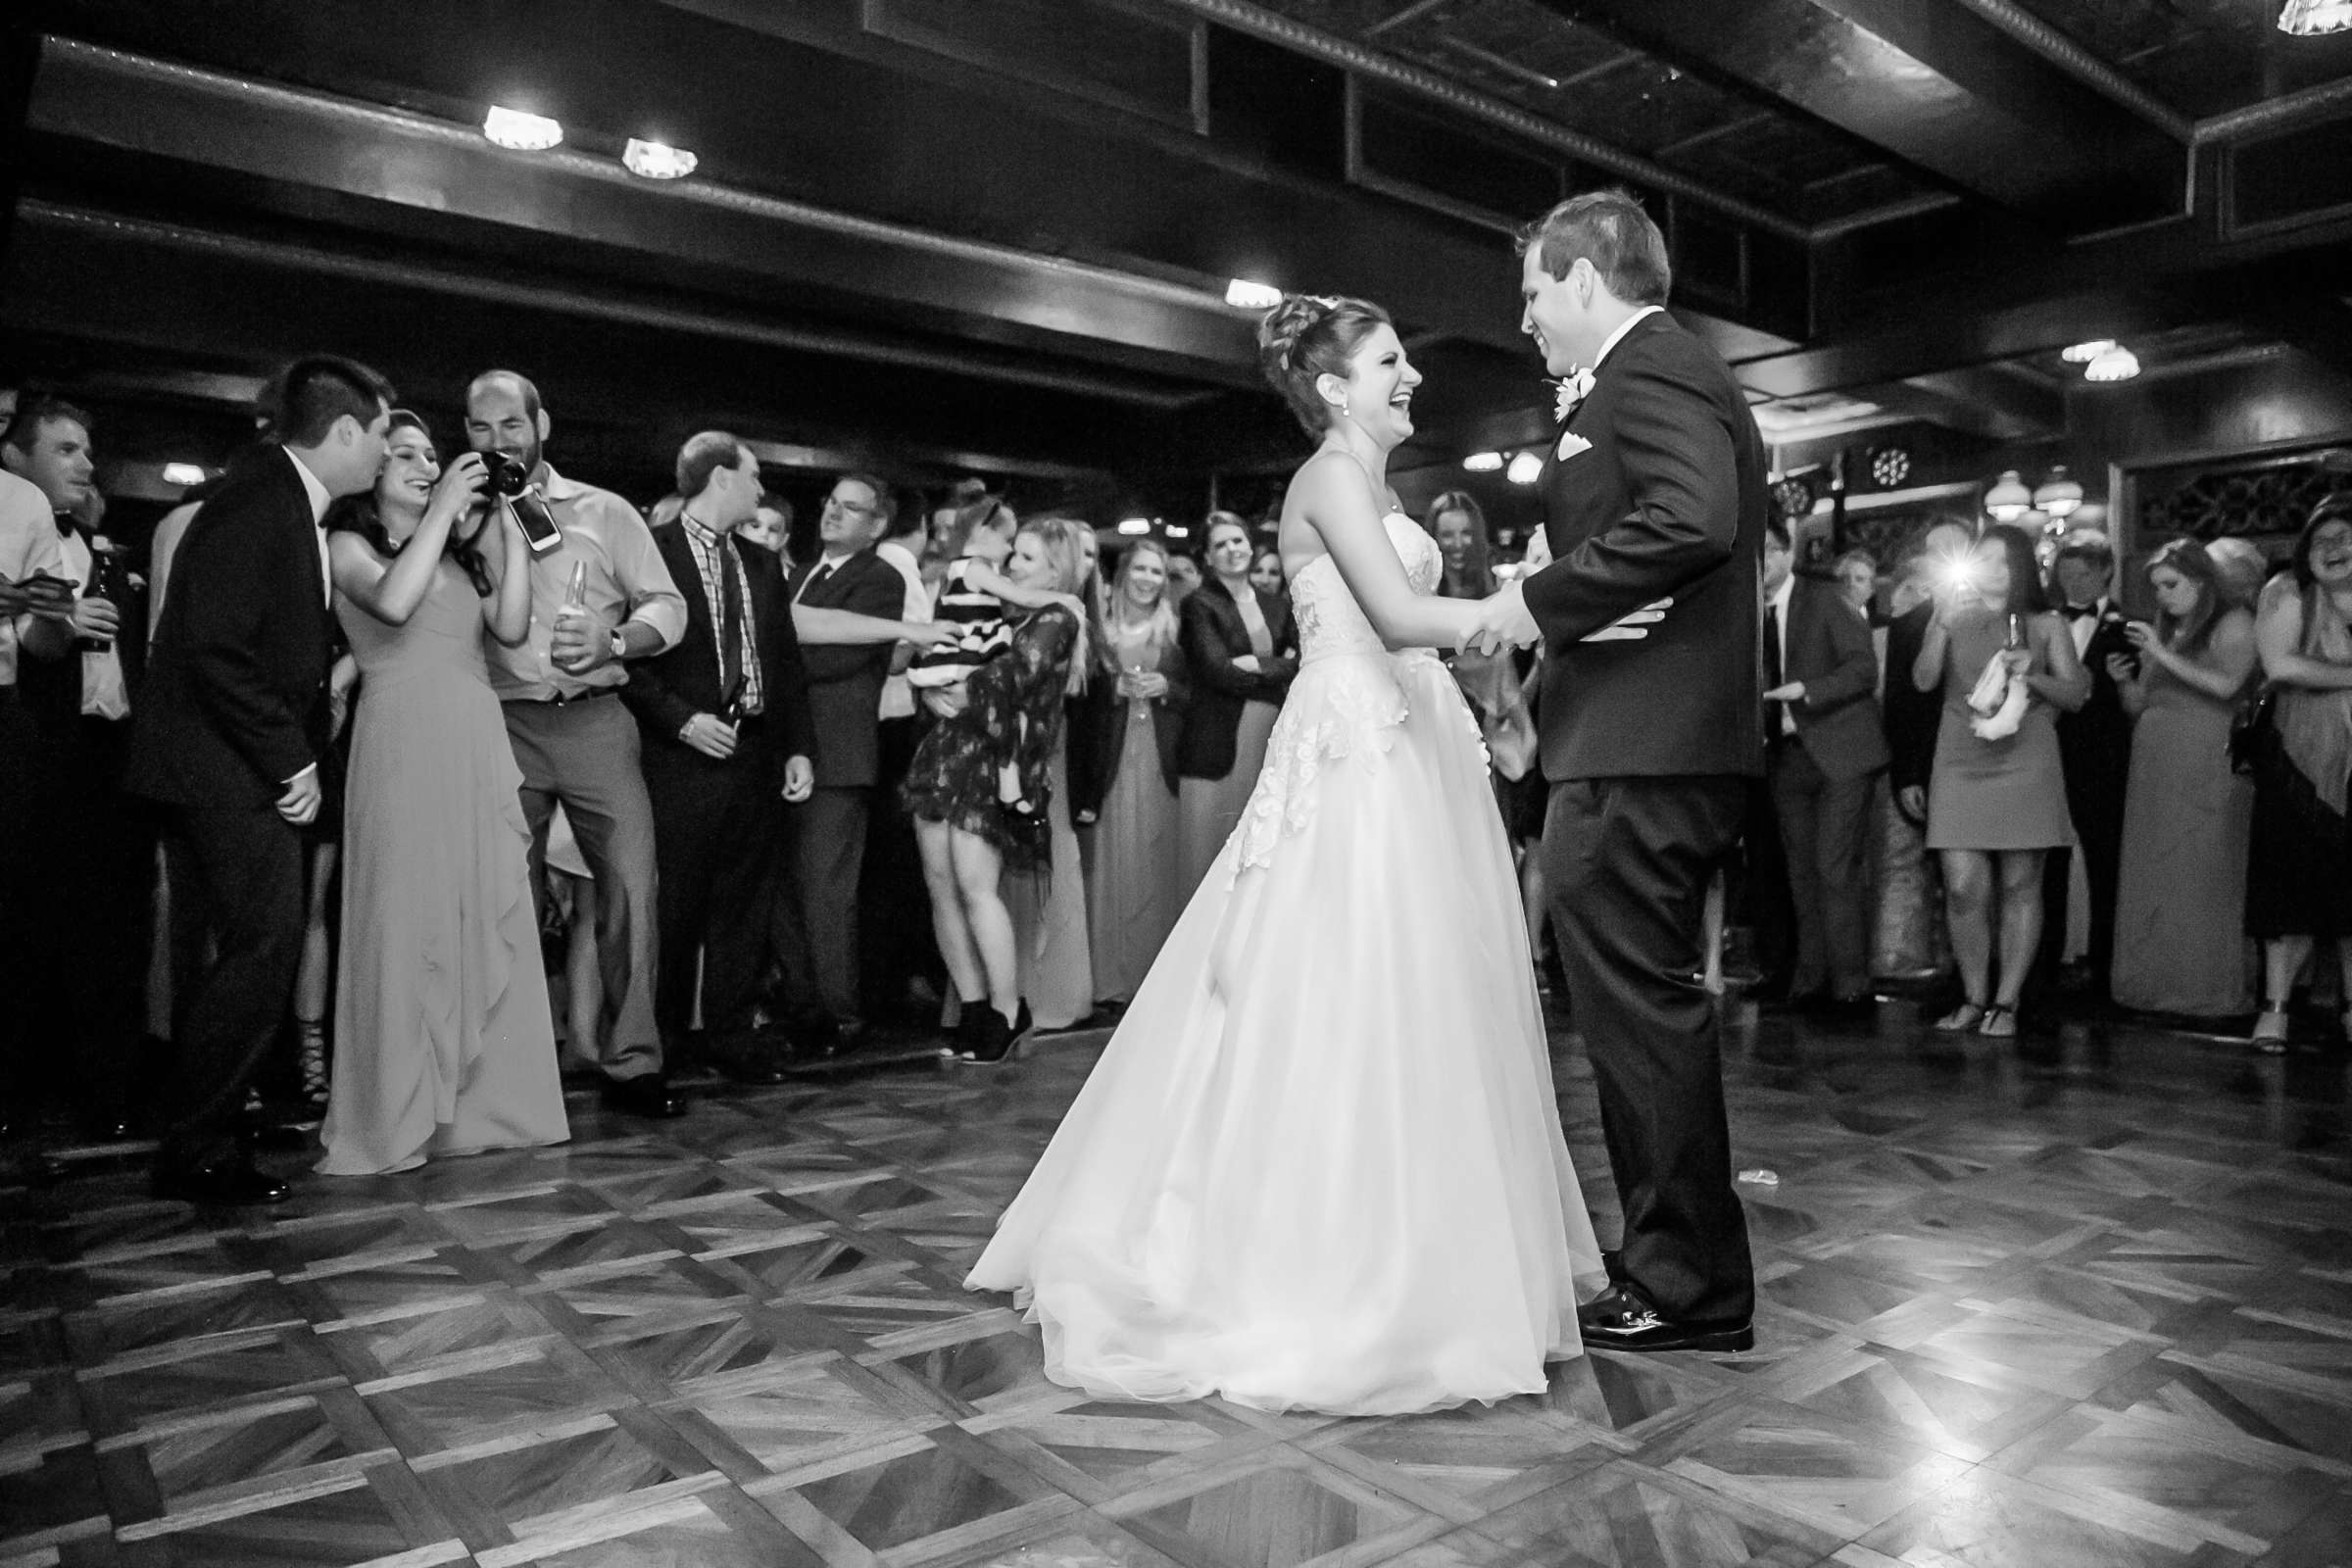 Bahia Hotel Wedding coordinated by I Do Weddings, Meredith and Jack Wedding Photo #84 by True Photography